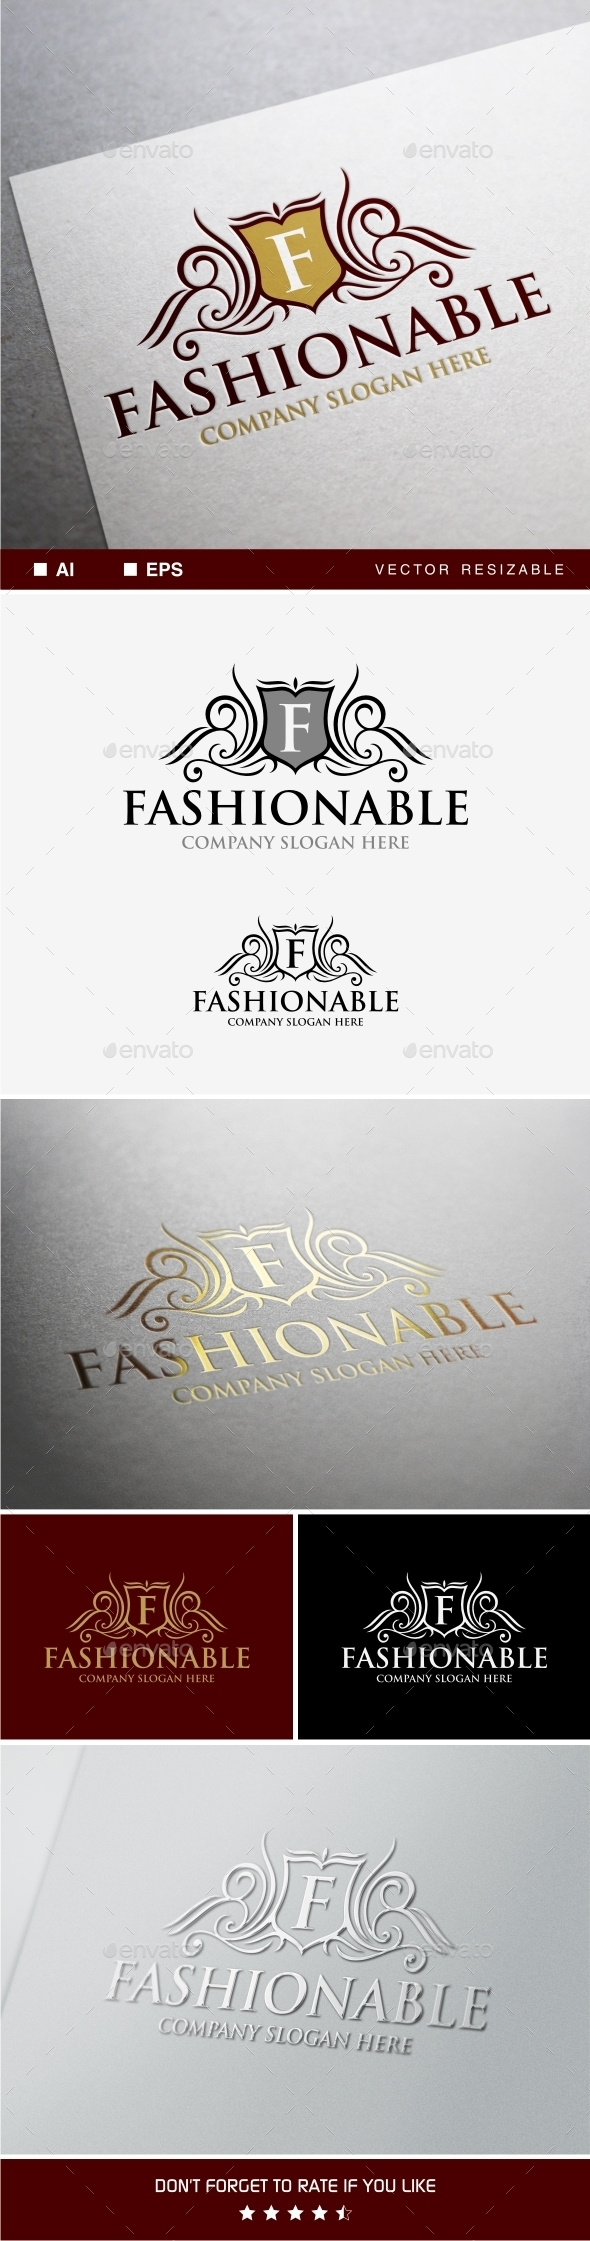 Fashionable Logo Template - Crests Logo Templates